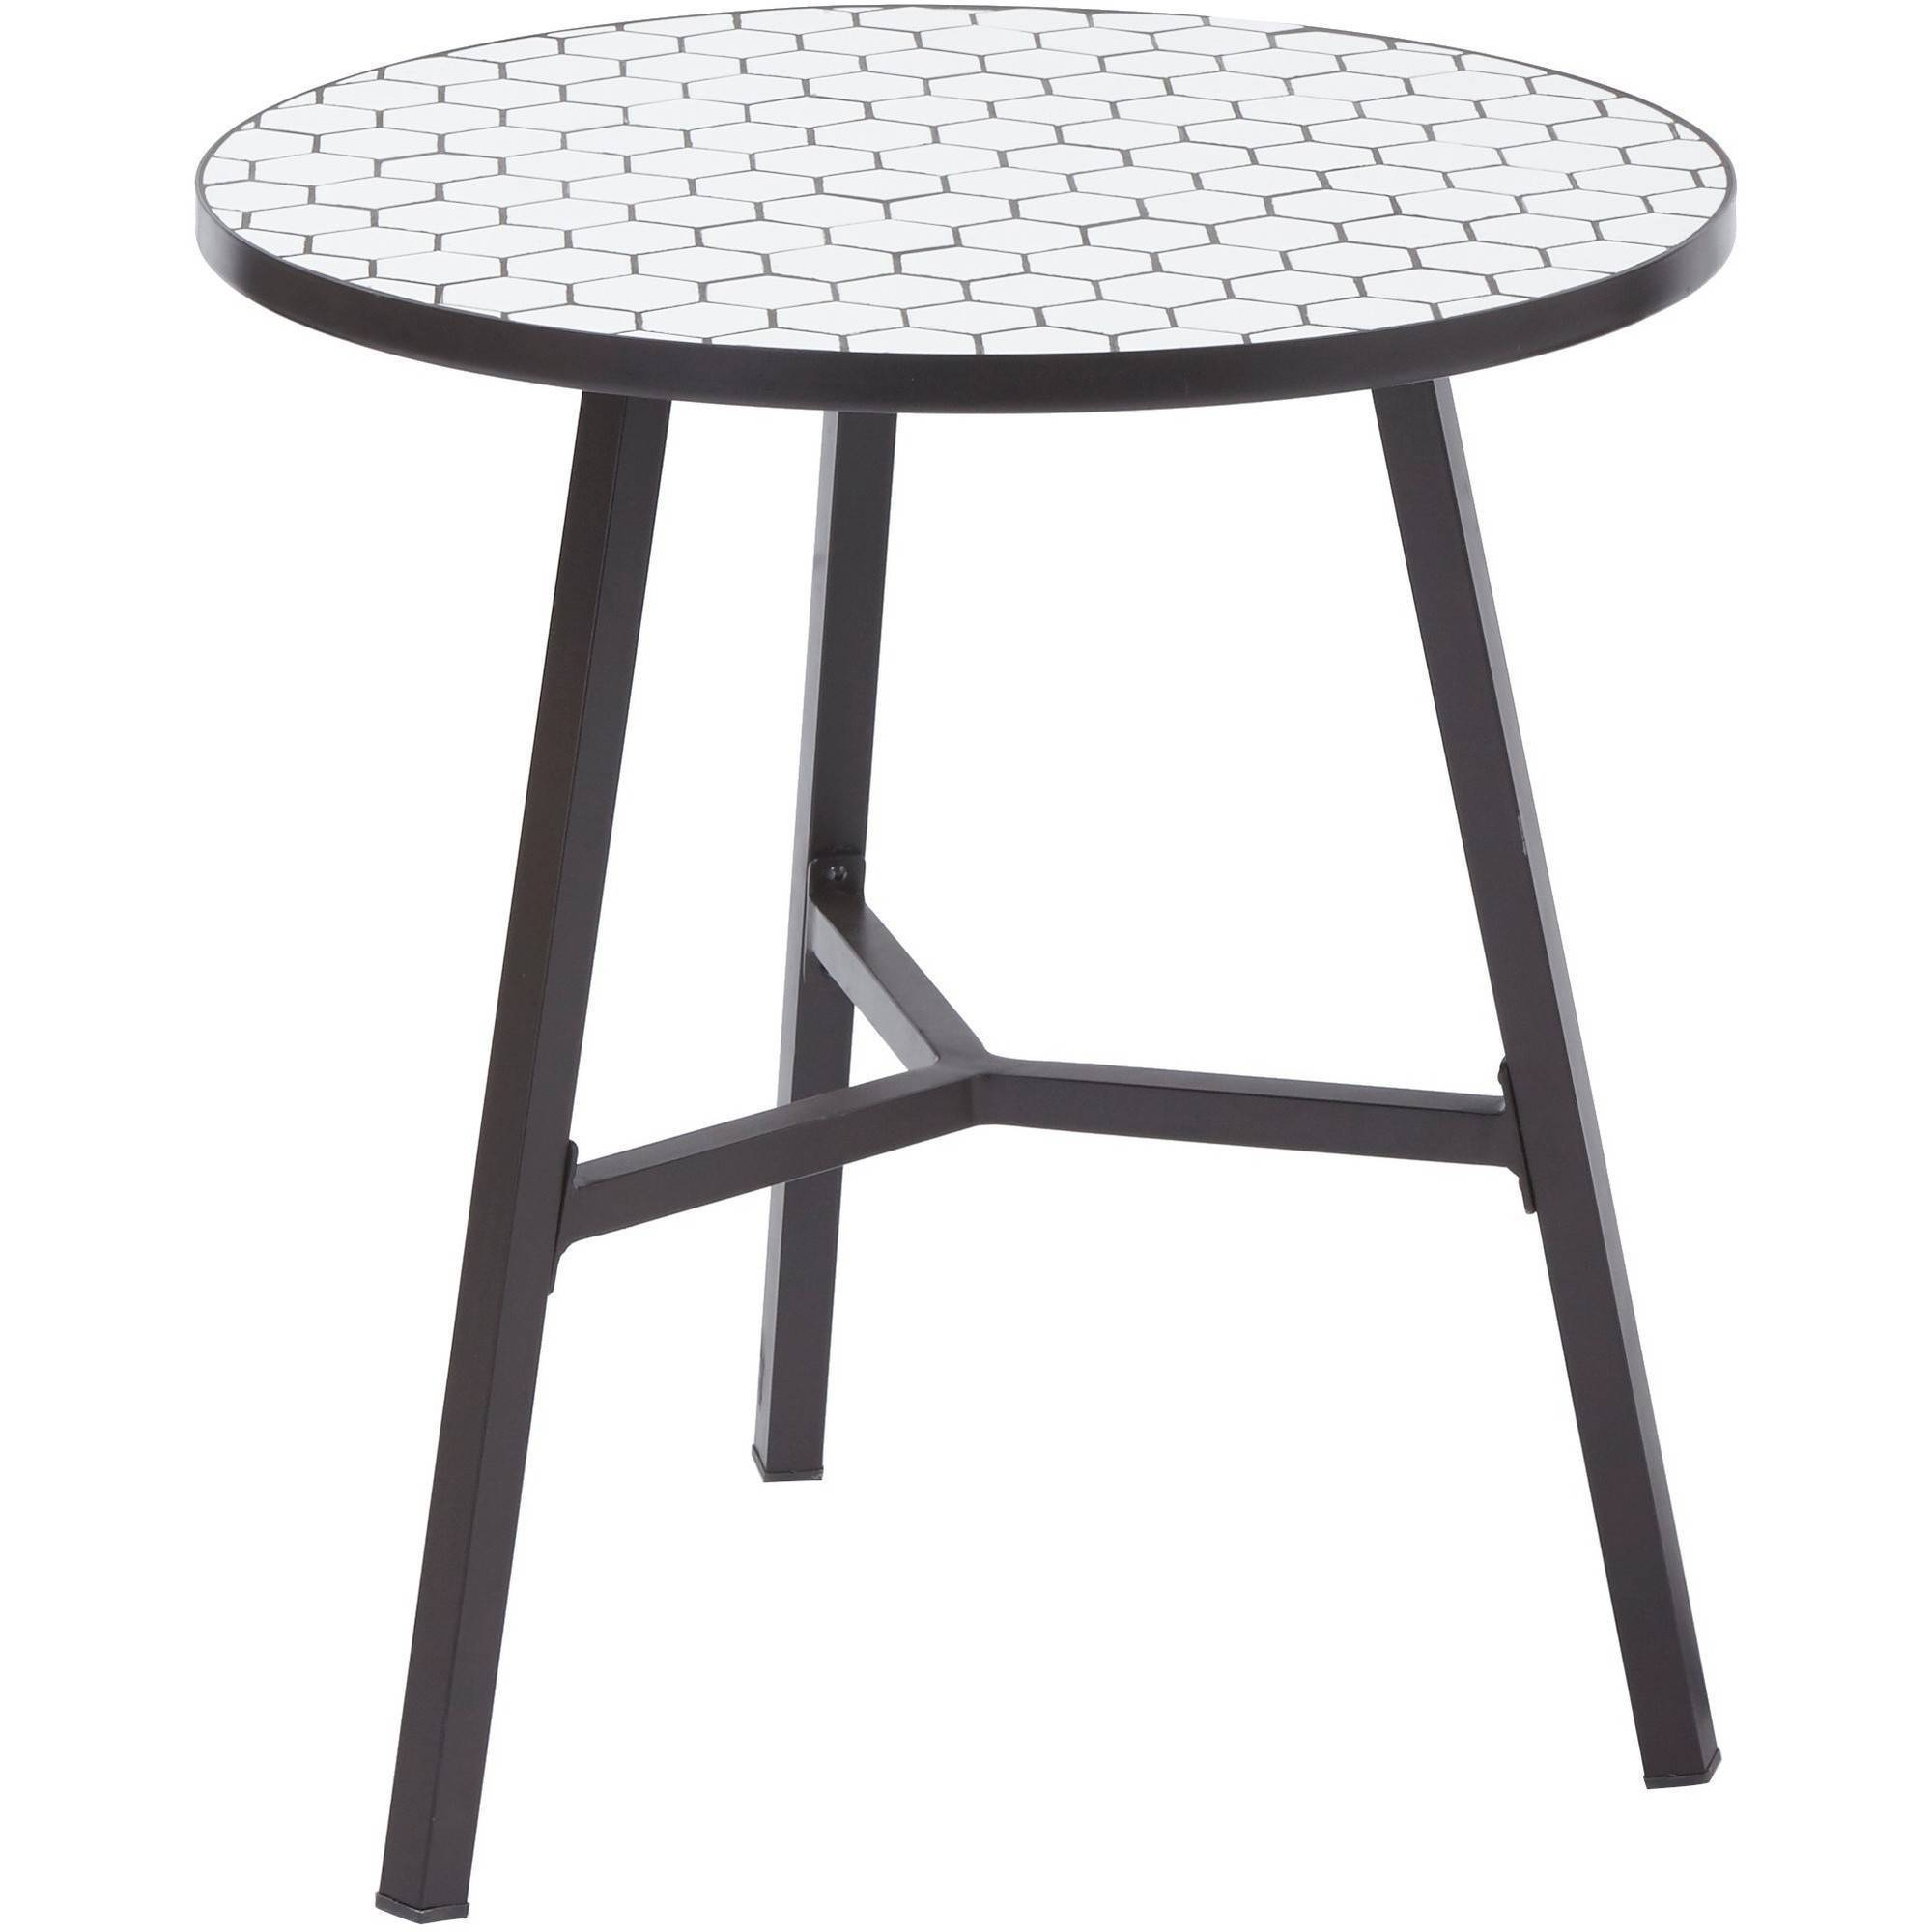 outdoor table patio furniture - walmart.com MTEGOHU